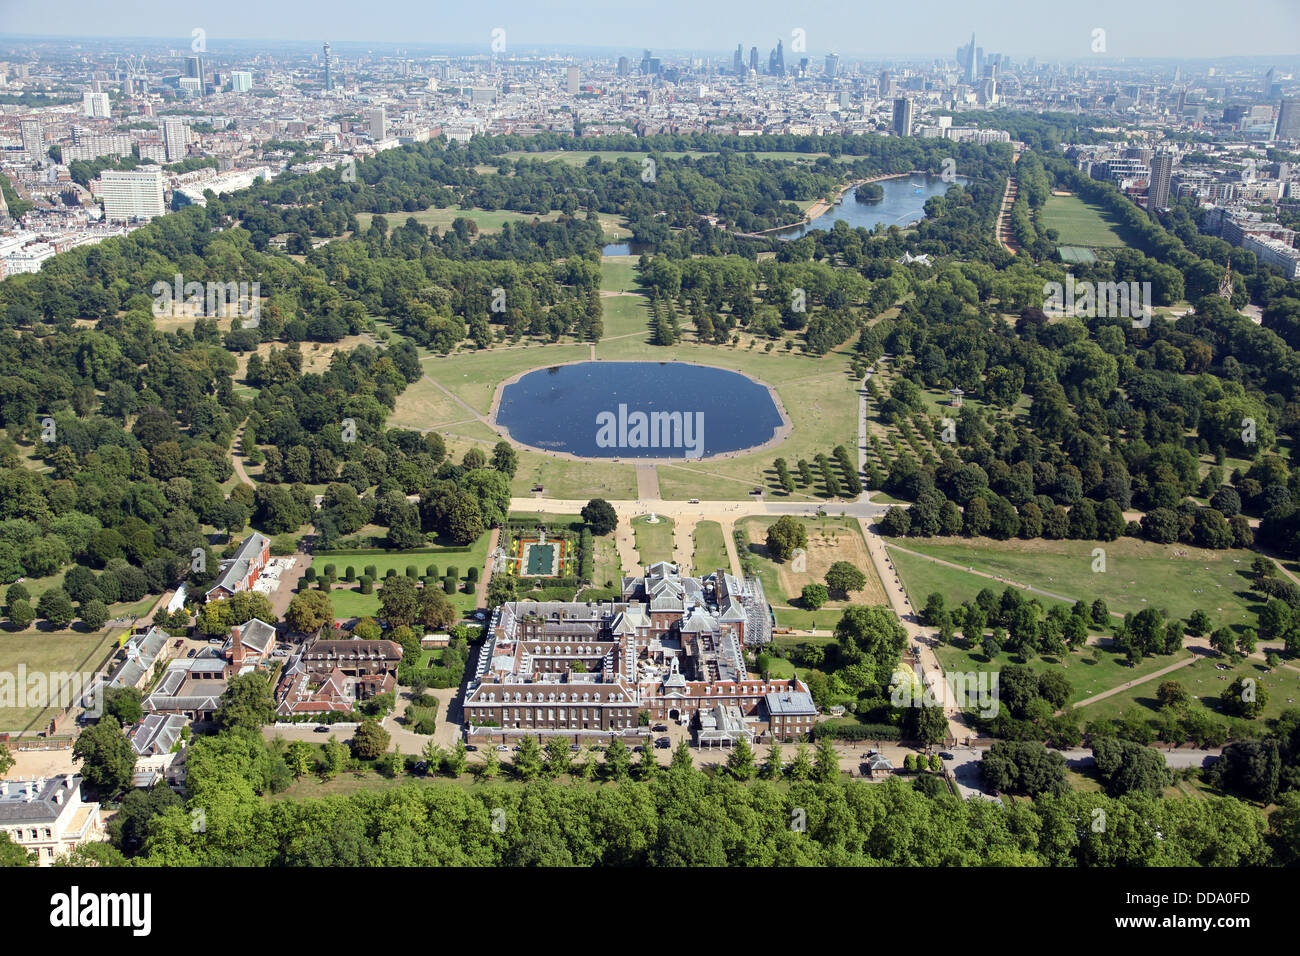 Contemporary additionally 5672049 together with Stock Photo Aerial View Of Kensington Palace In London Home Of Prince William 59841585 together with 2011 01 03 Flatiron Building New York by R Grigonis together with Emily Blunt Bra Size Age Weight Height Measurements. on chelsea house plan